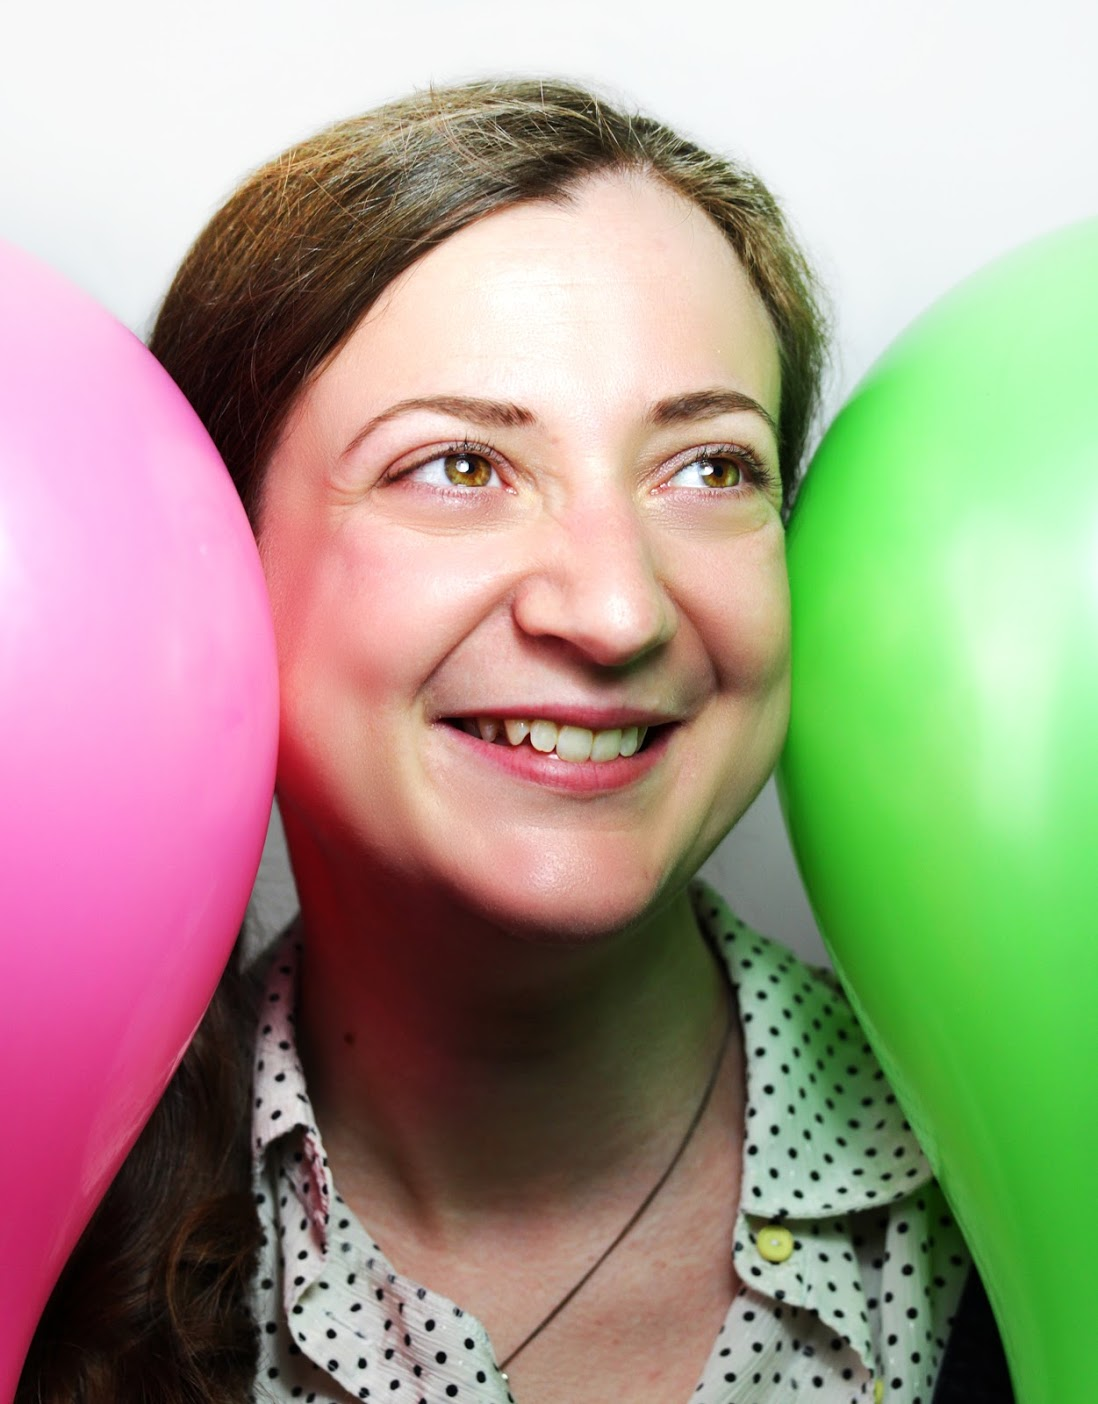 Leanne with balloons